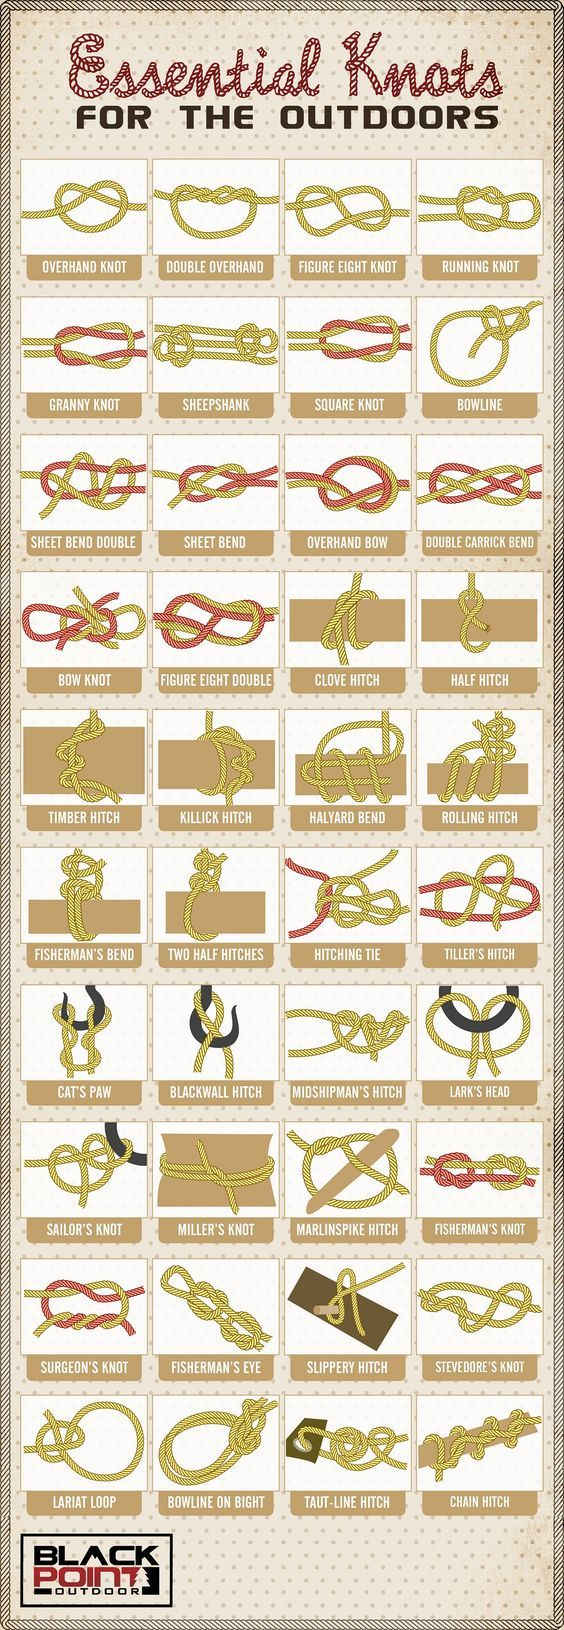 Essential Knots, Knot Tying, Knots of the outdoors: